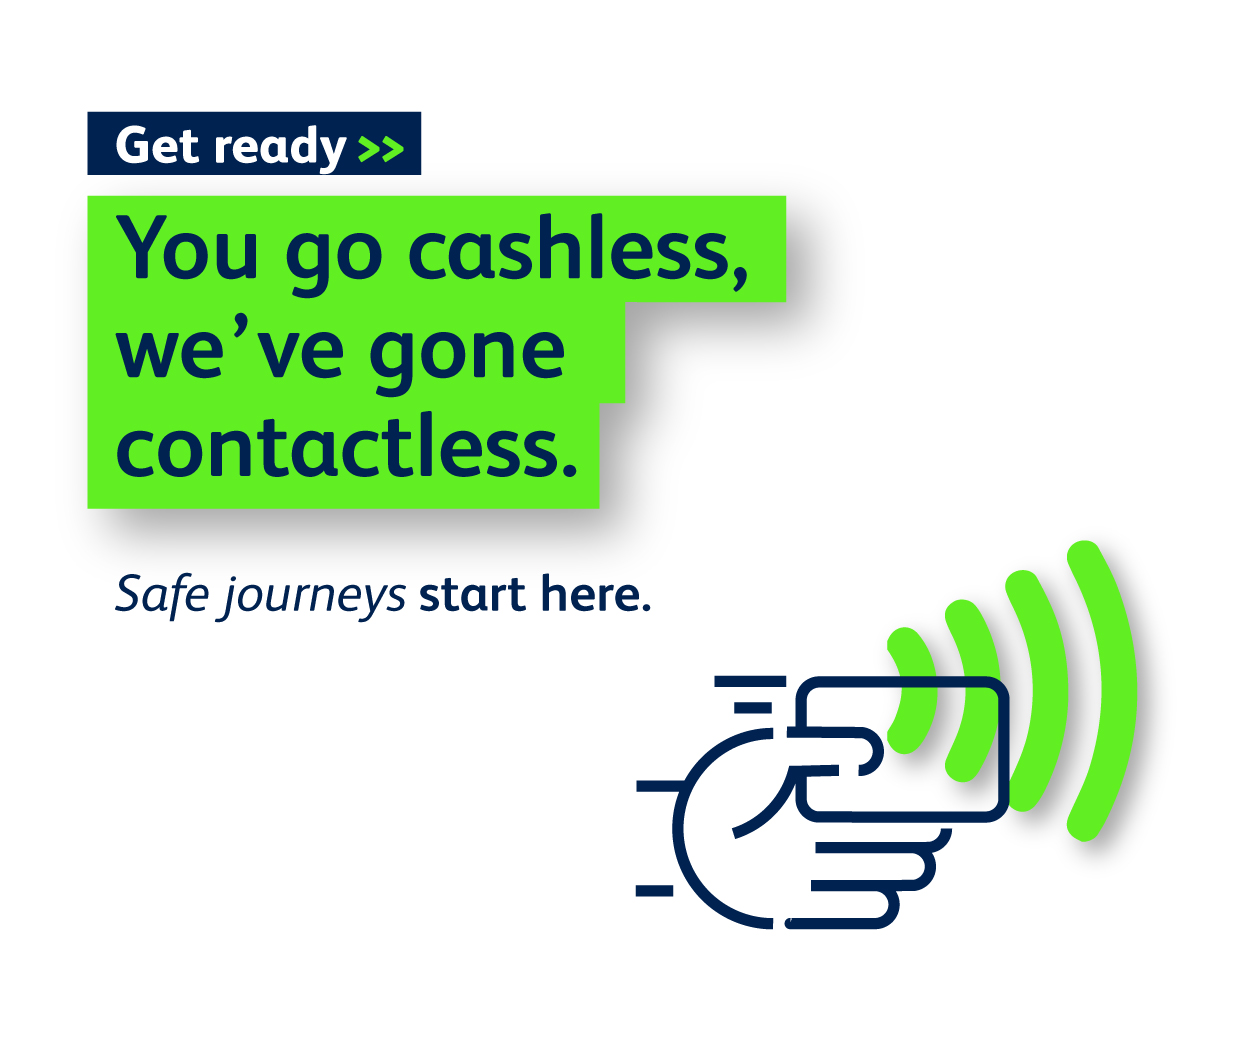 Bring contactless payment to Bristol Airport